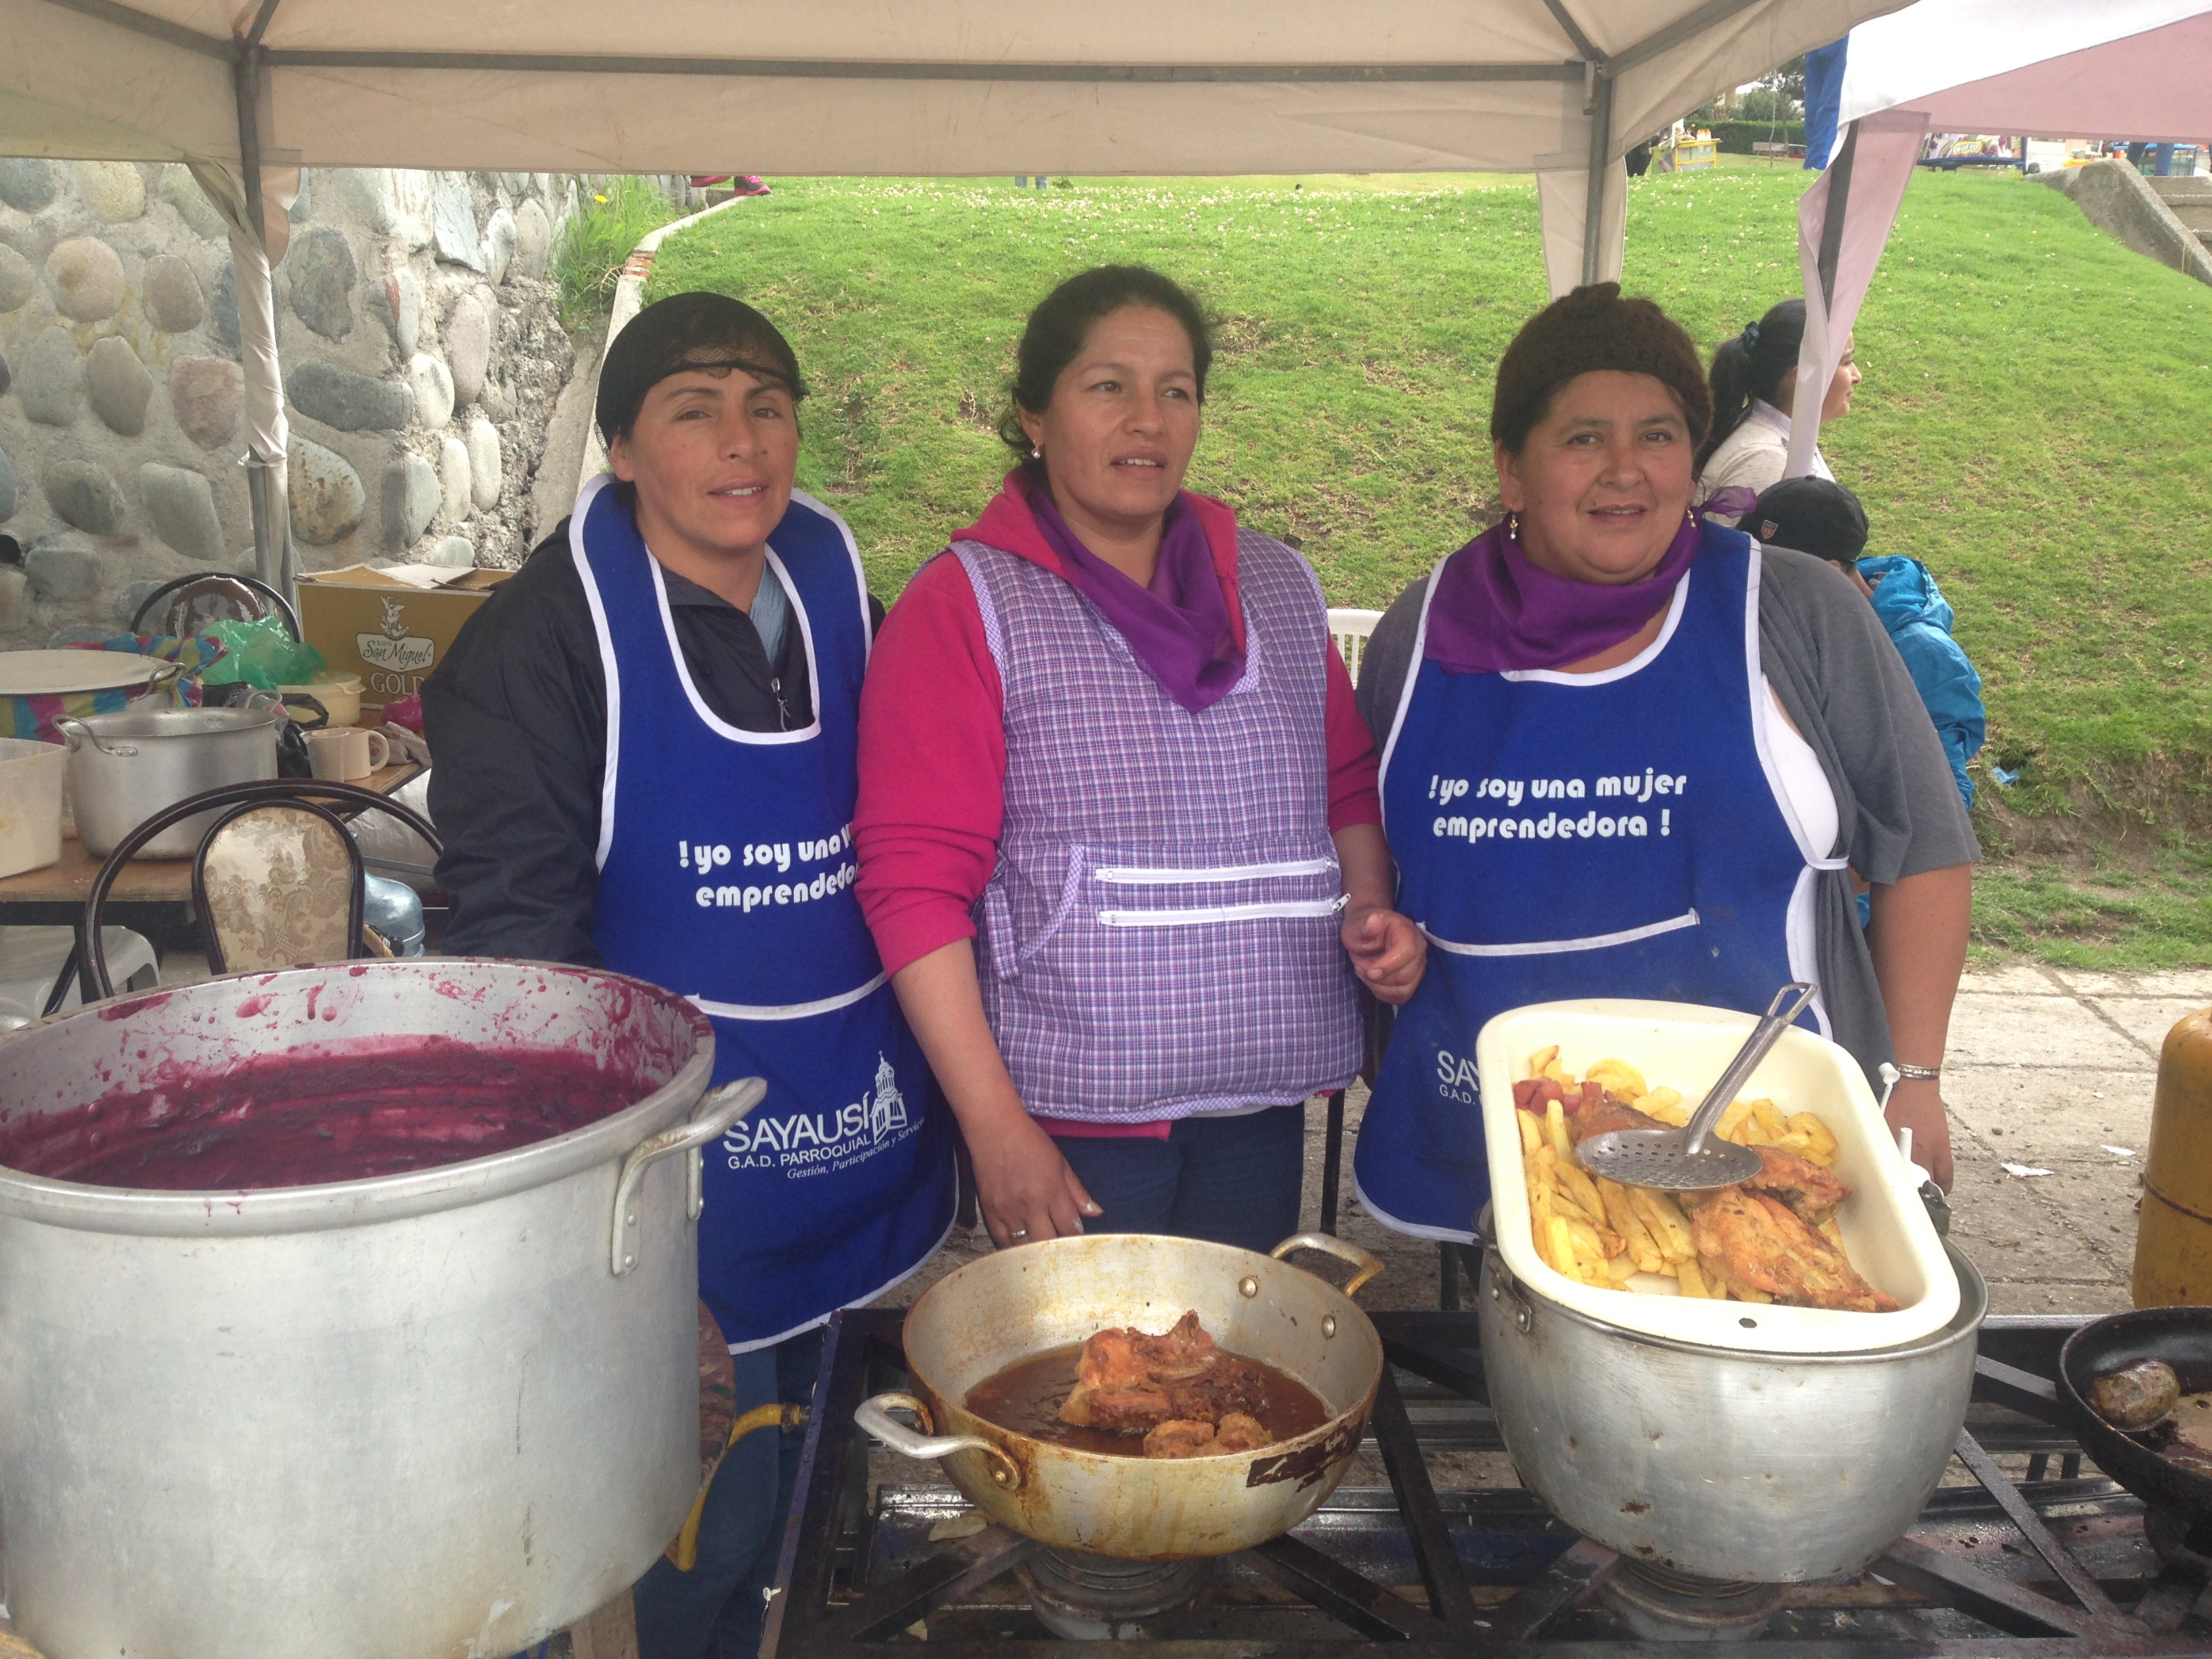 Local-led Culinary Tourism in the Ecuadorian Andes